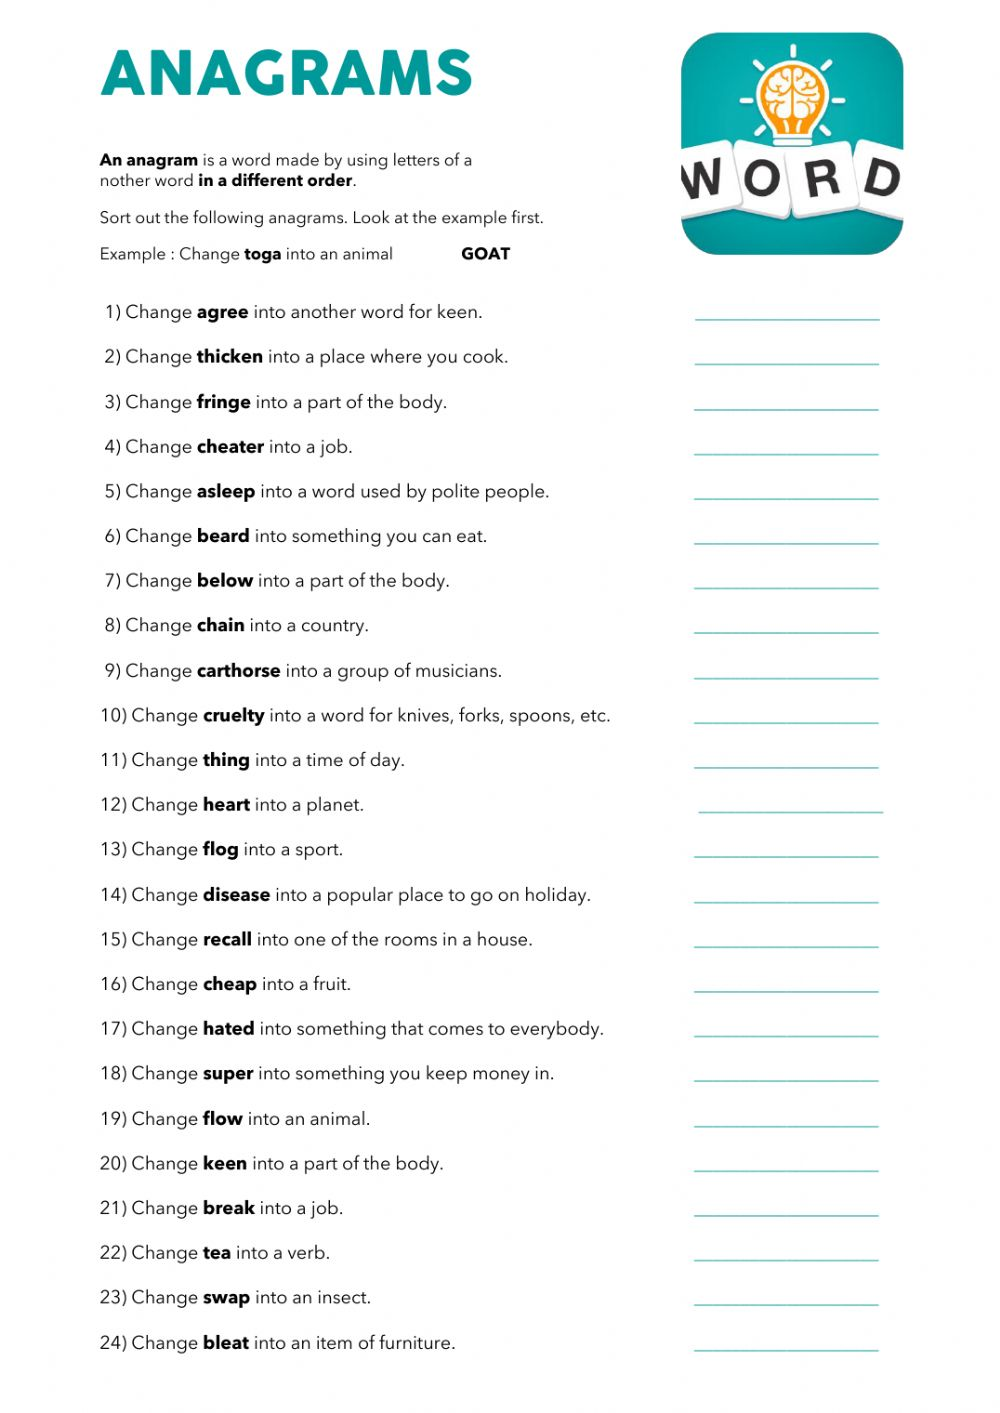 Anagrams Interactive And Downloadable Worksheet You Can Do The Exercises Online Or Download The Worksheet As P Anagram Words Vocabulary Games For Kids Anagram [ 1413 x 1000 Pixel ]